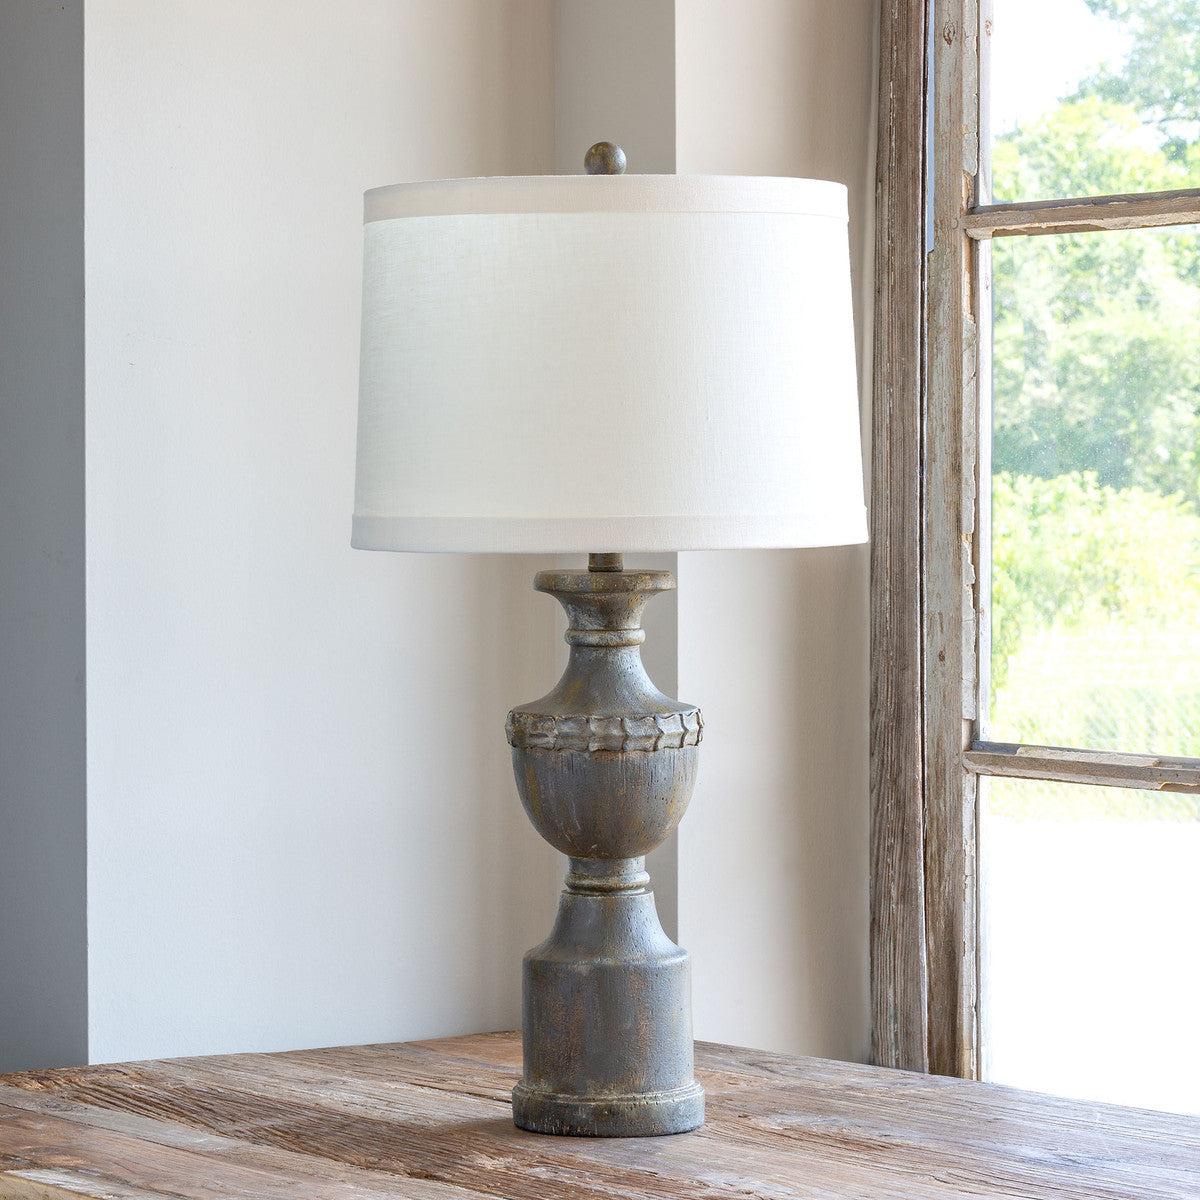 Lovecup Weathered Finial Lamp L451